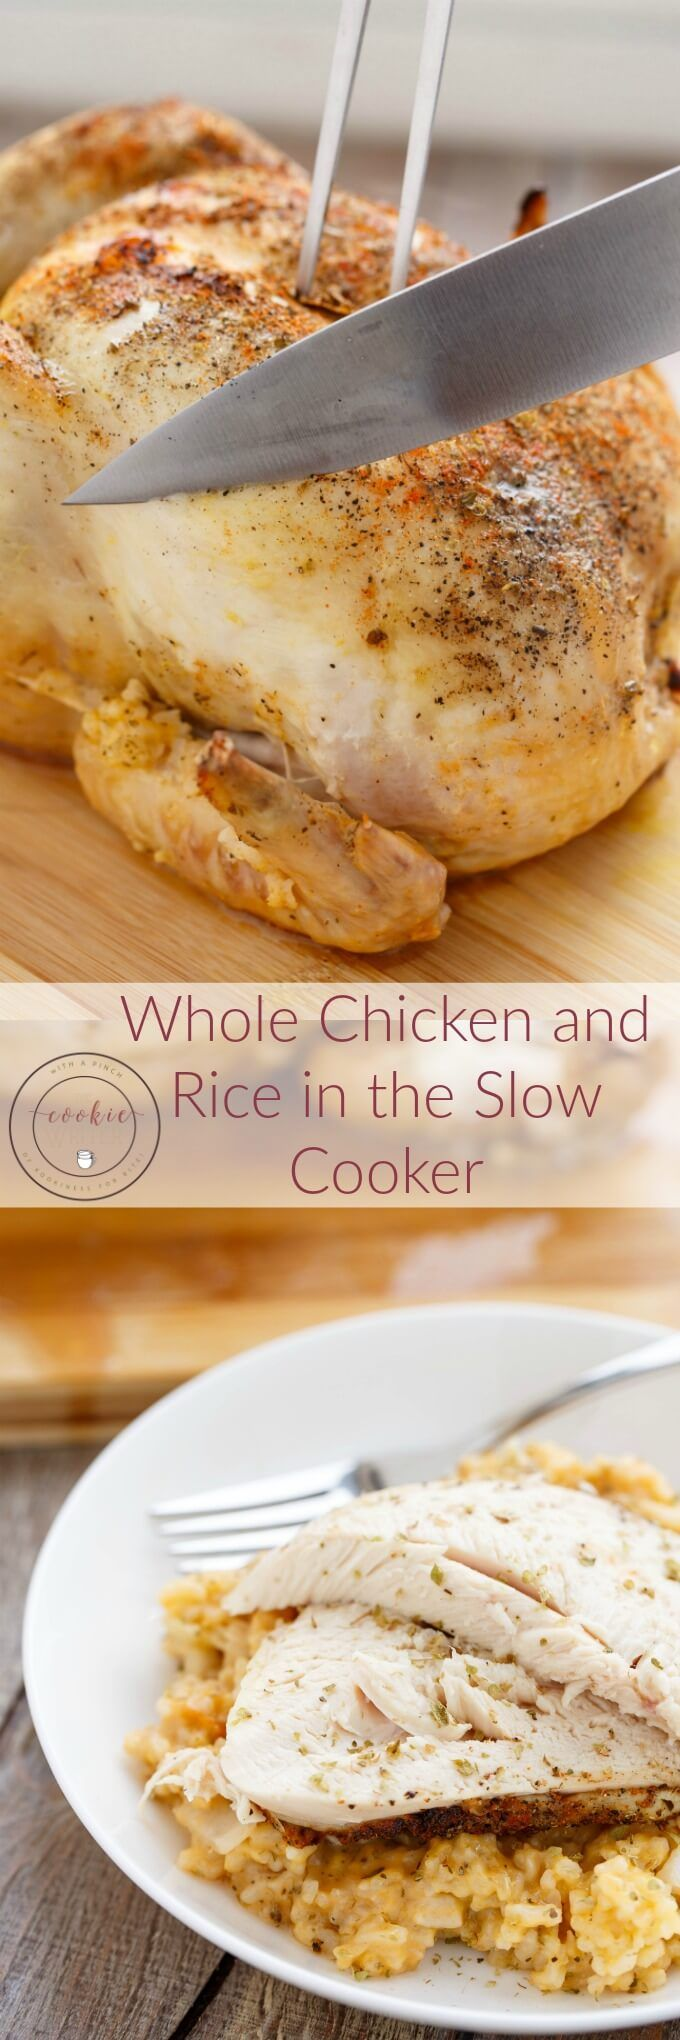 Whole Chicken and Rice in the Slow Cooker   http://thecookiewriter.com…